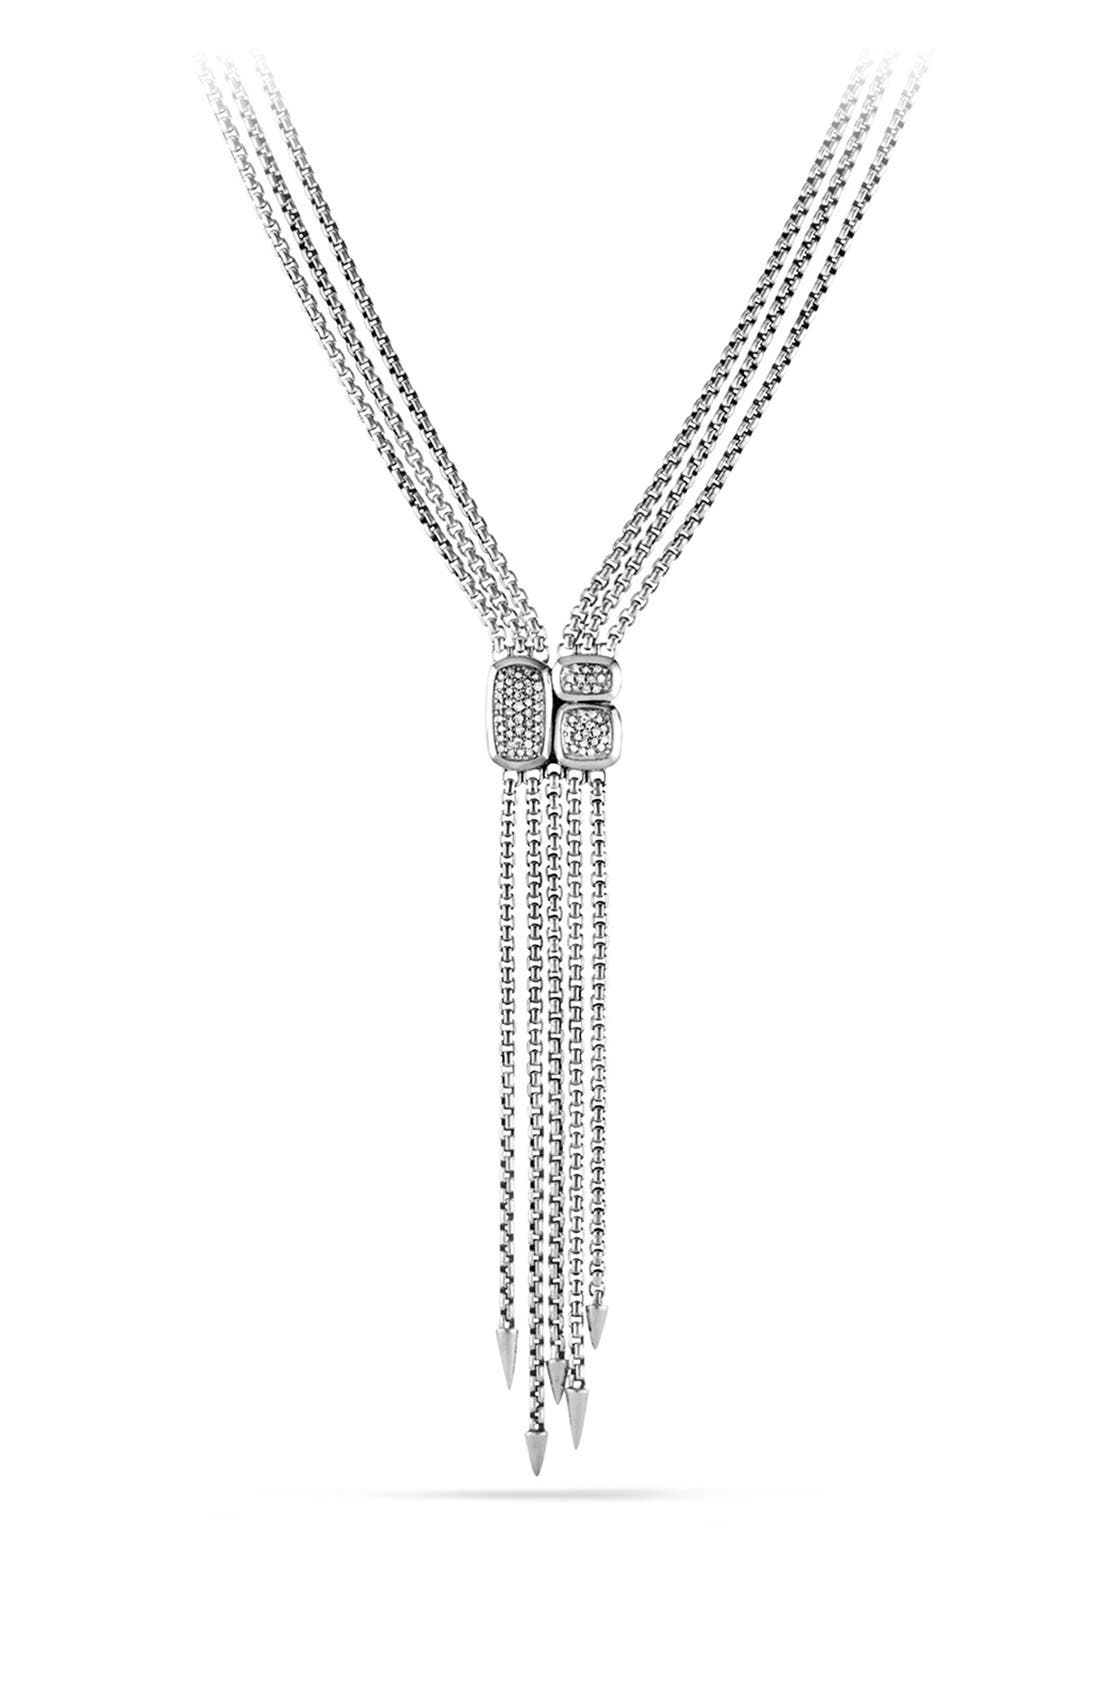 David Yurman 'Confetti' Drop Necklace with Diamonds